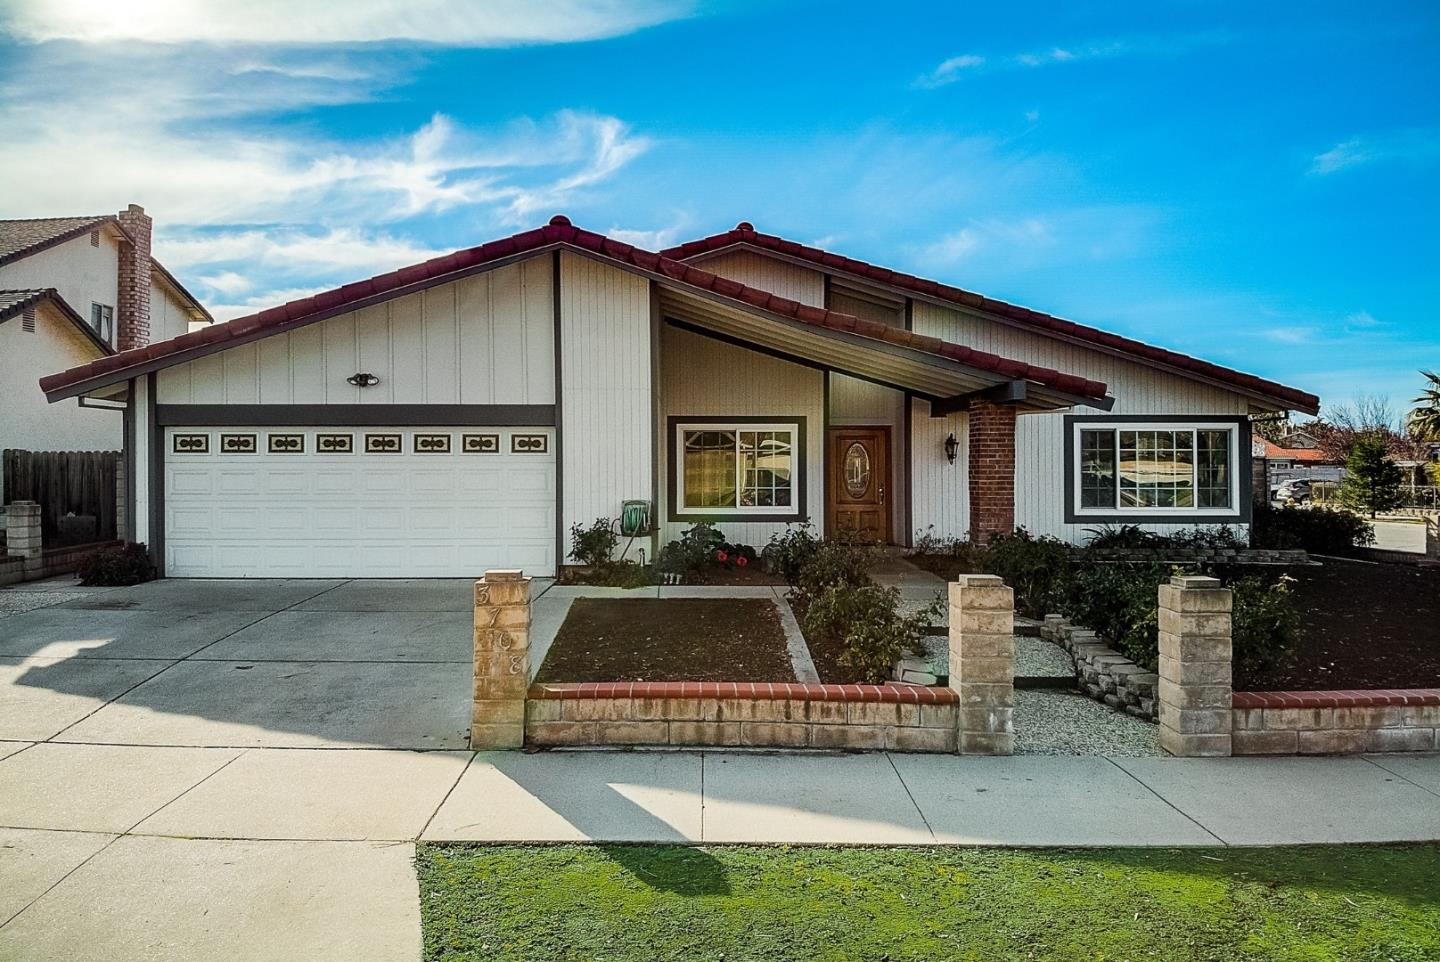 3708 Dundale DR, Evergreen in Santa Clara County, CA 95121 Home for Sale